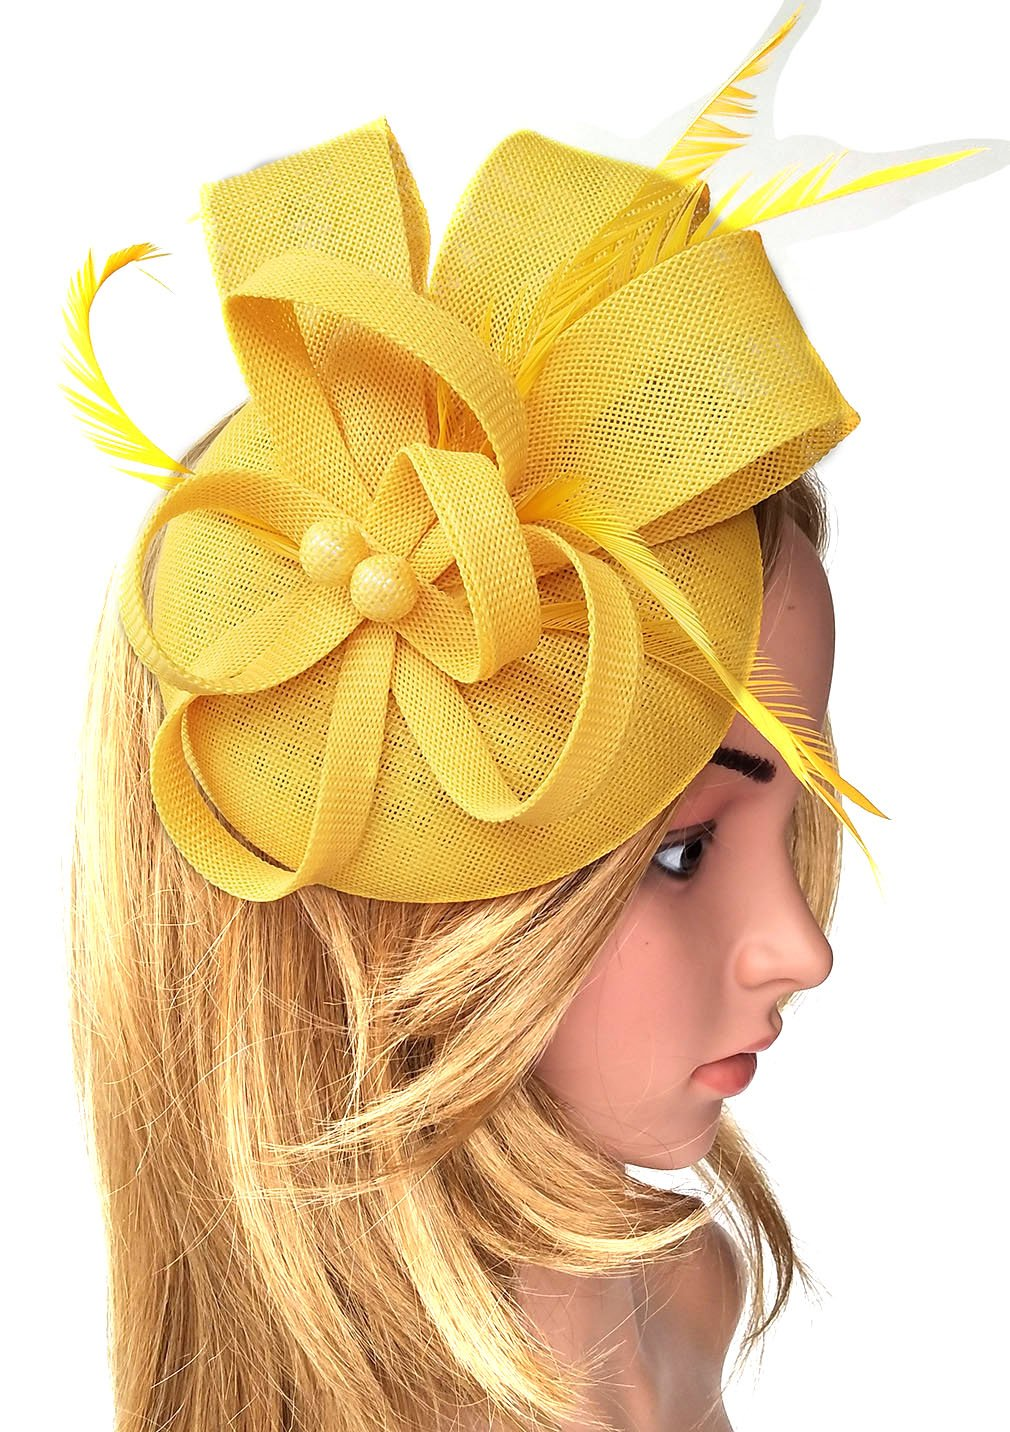 Biruil Women's Fascinator Hat Imitation Sinamay Feather Tea Party Pillbox Flower Derby (Yellow) by Biruil (Image #1)